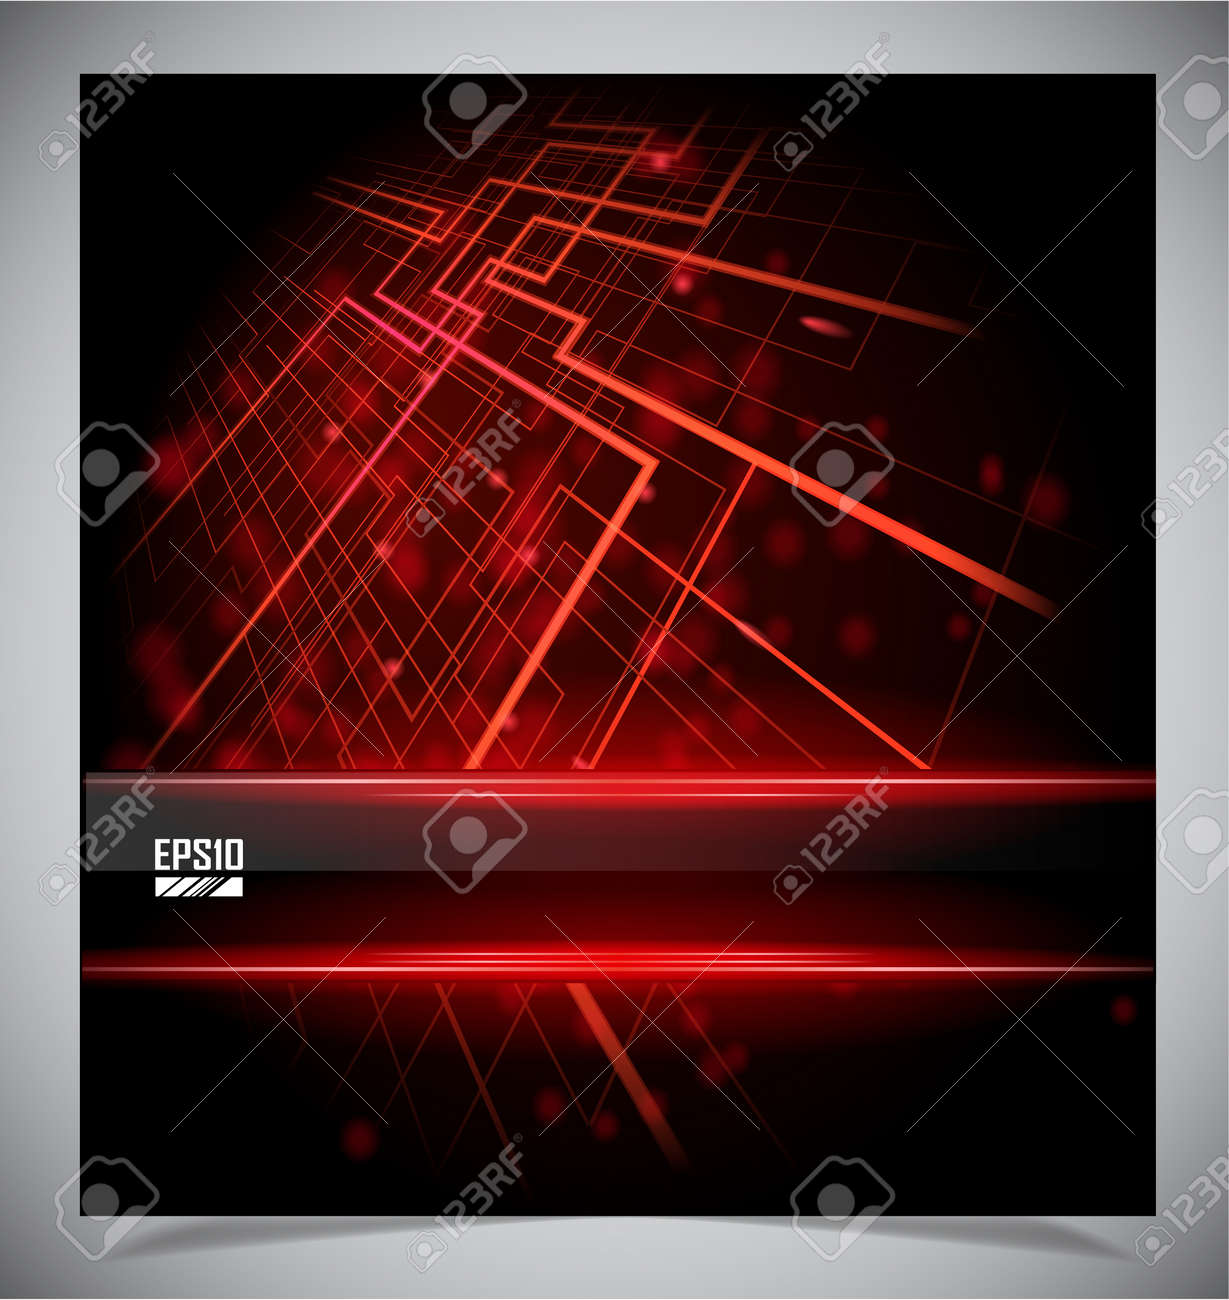 Smooth colorful abstract techno background illustration - 17297451